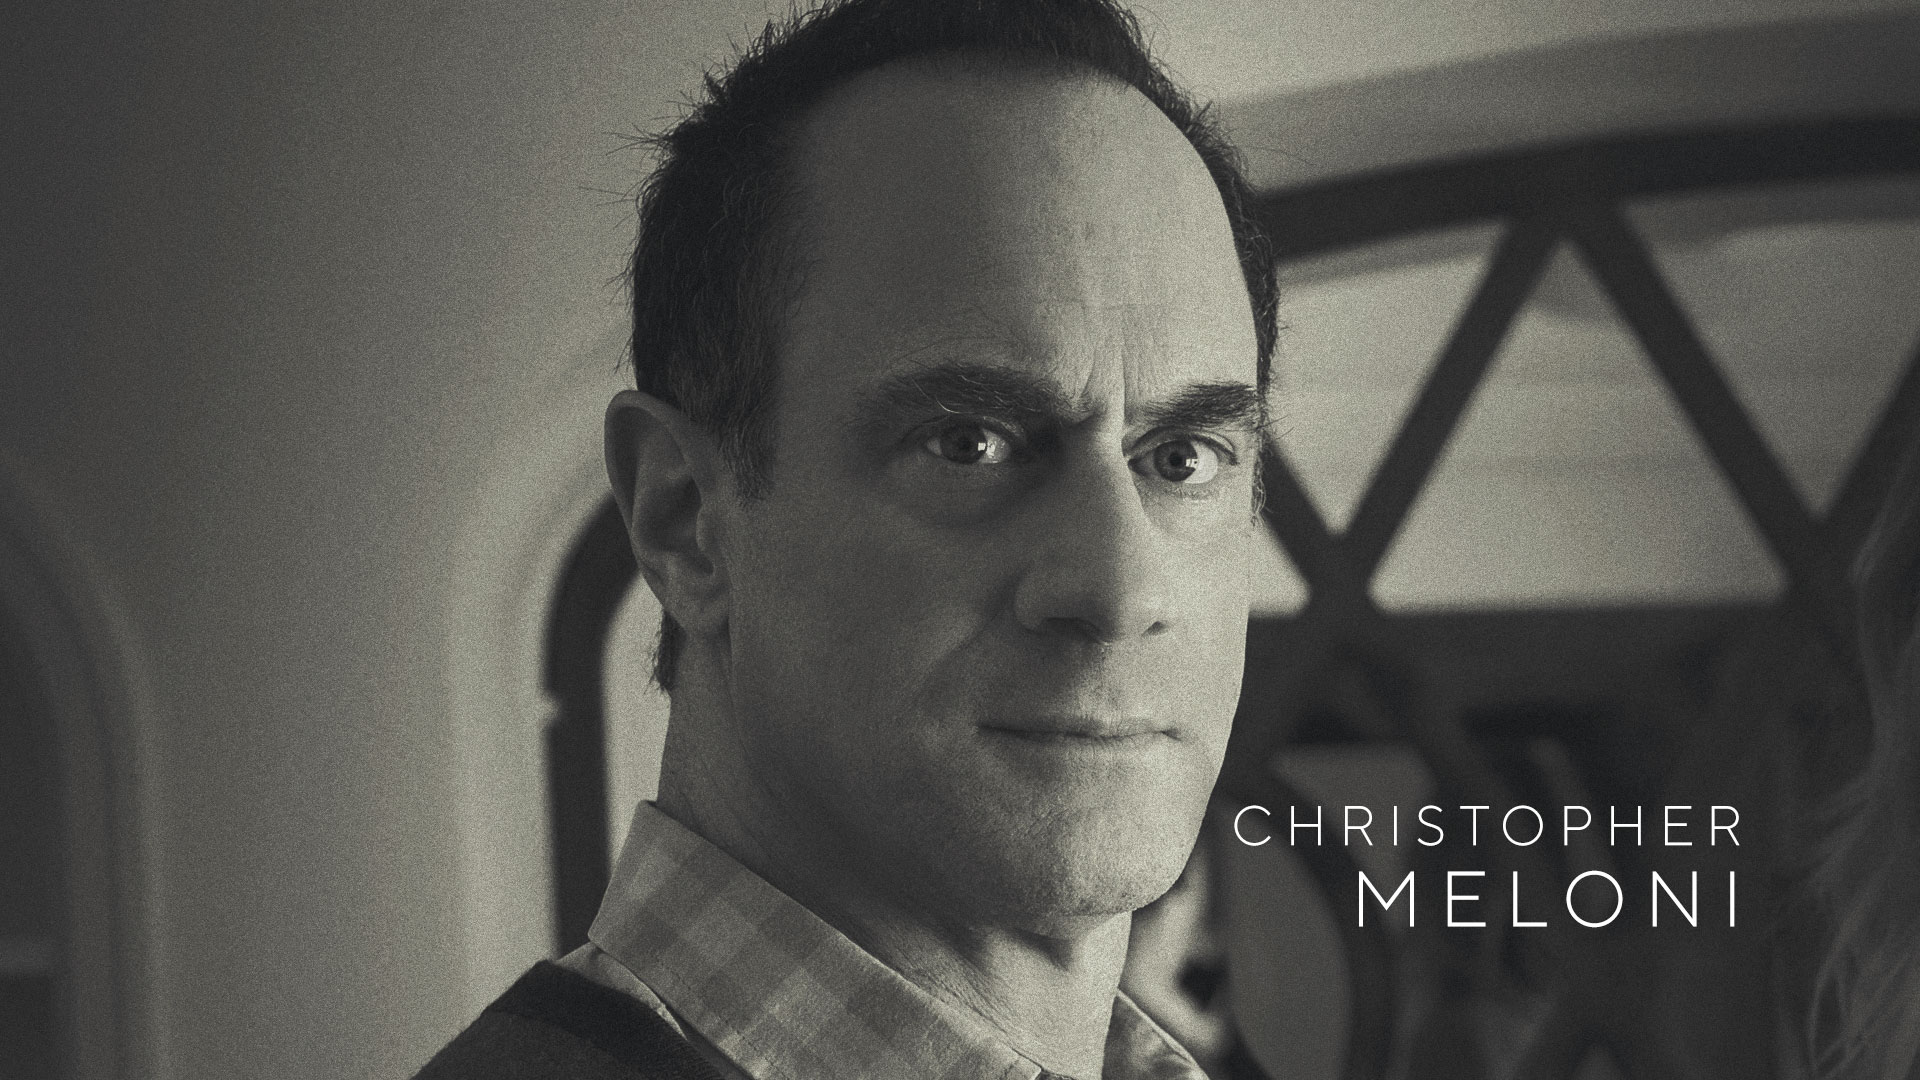 Christopher Meloni as Robert in